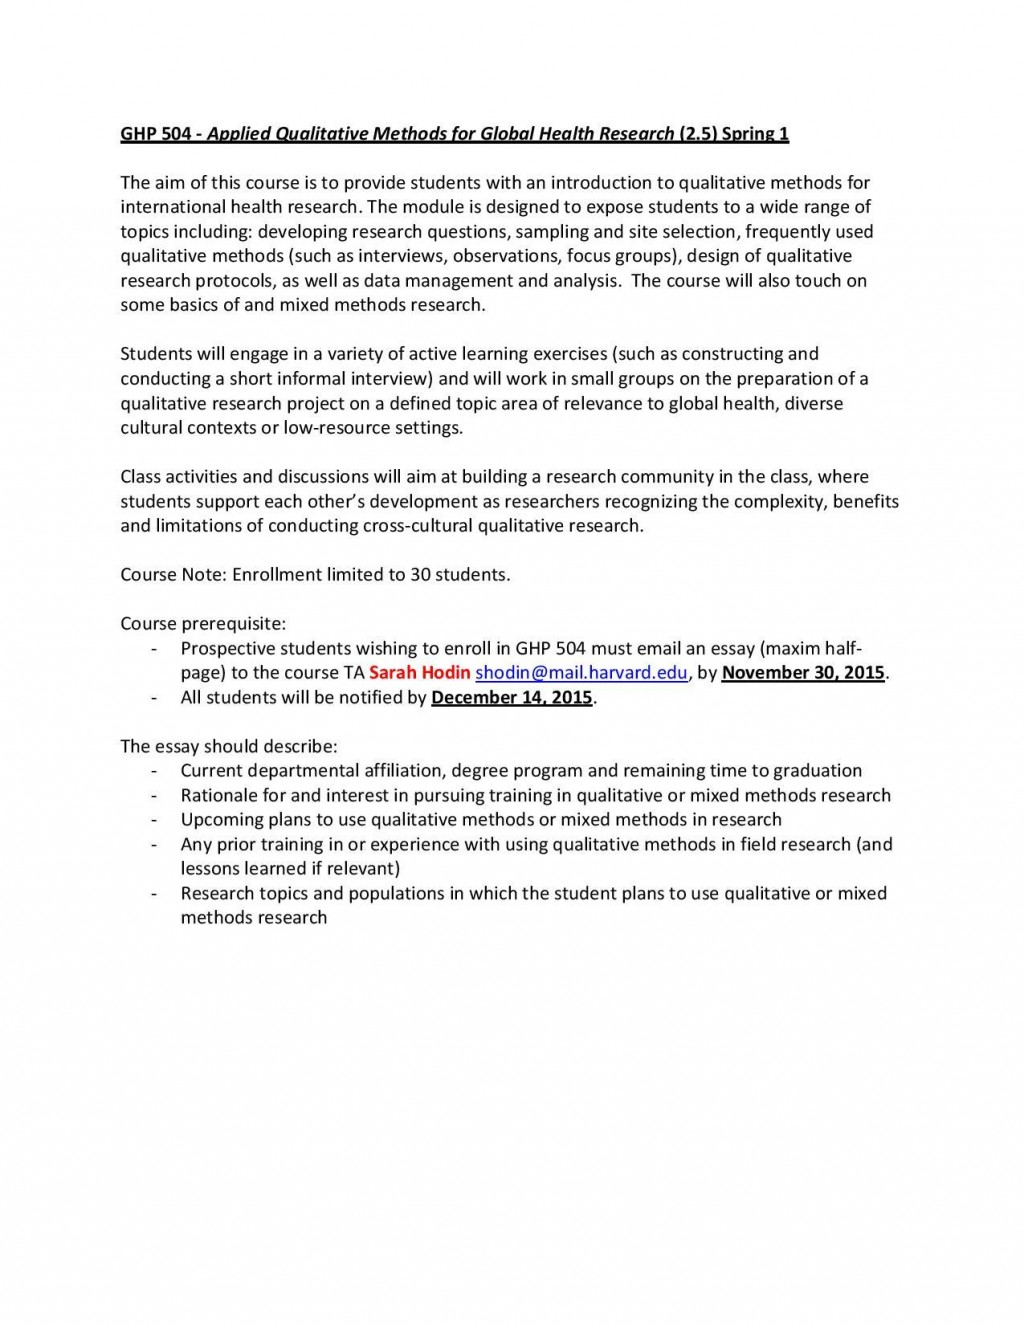 010 Essay Example Ghp Course Announcement Page Harvard Astounding Prompt Prompts 2017-18 College 2017 Large